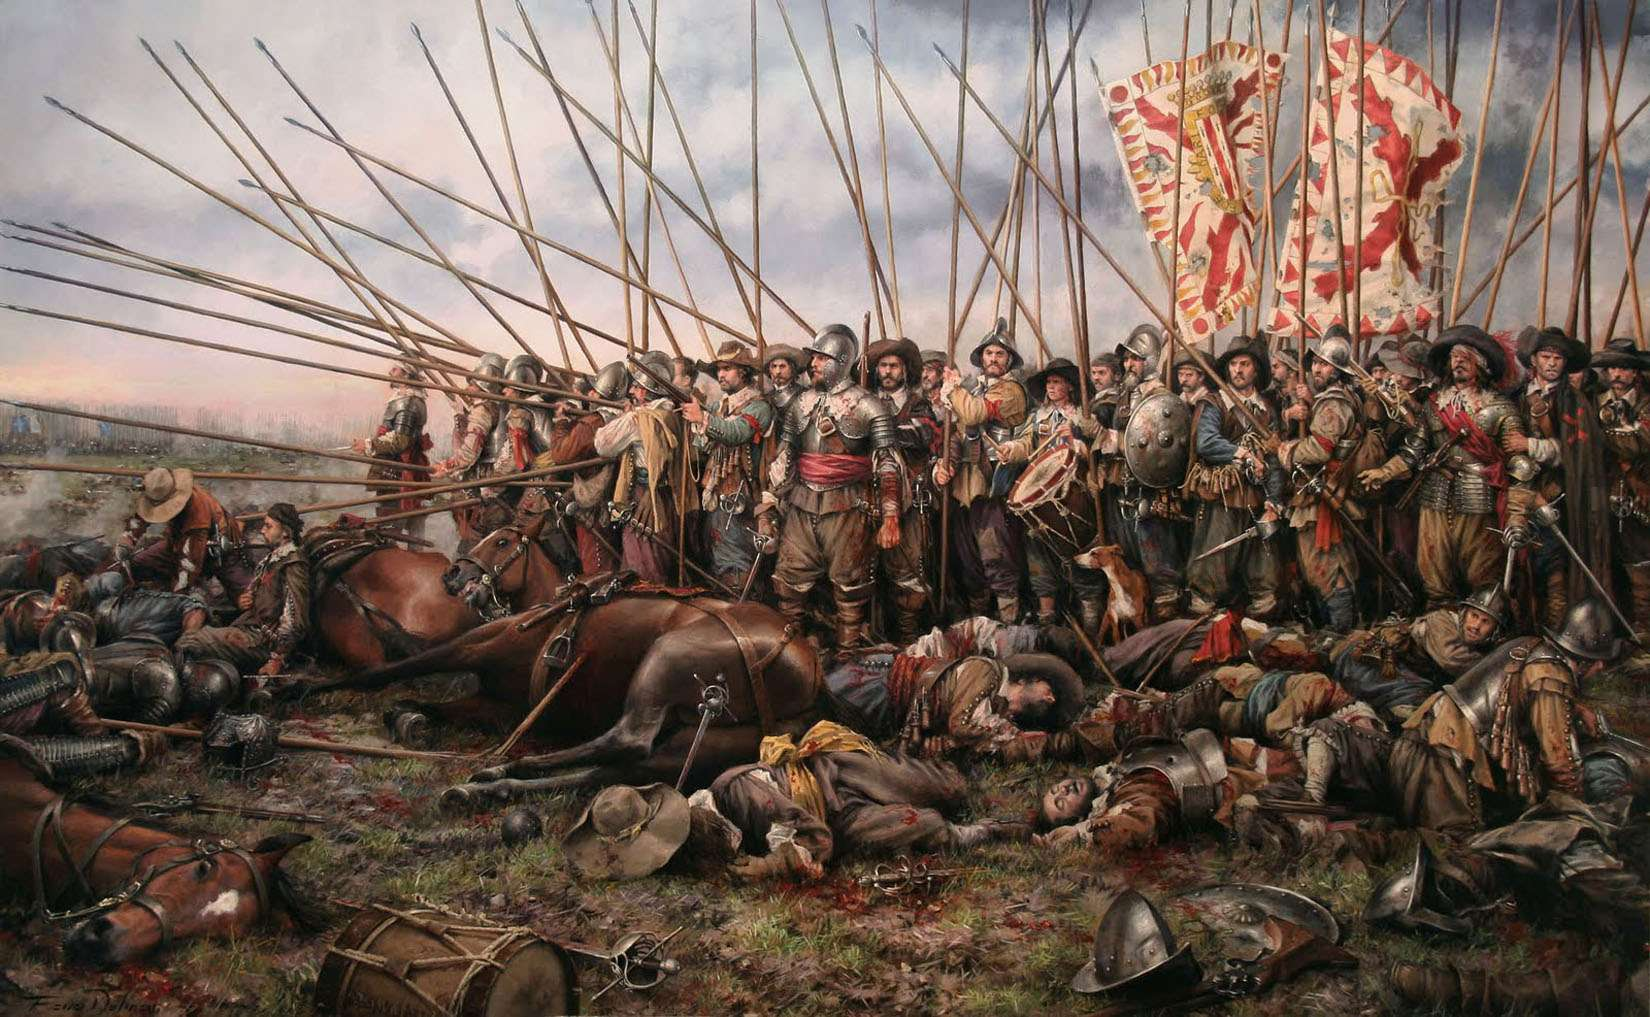 Τριακονταετής Πόλεμος. The Battle of Rocroi (1643), by Augusto Ferrer-Dalmau